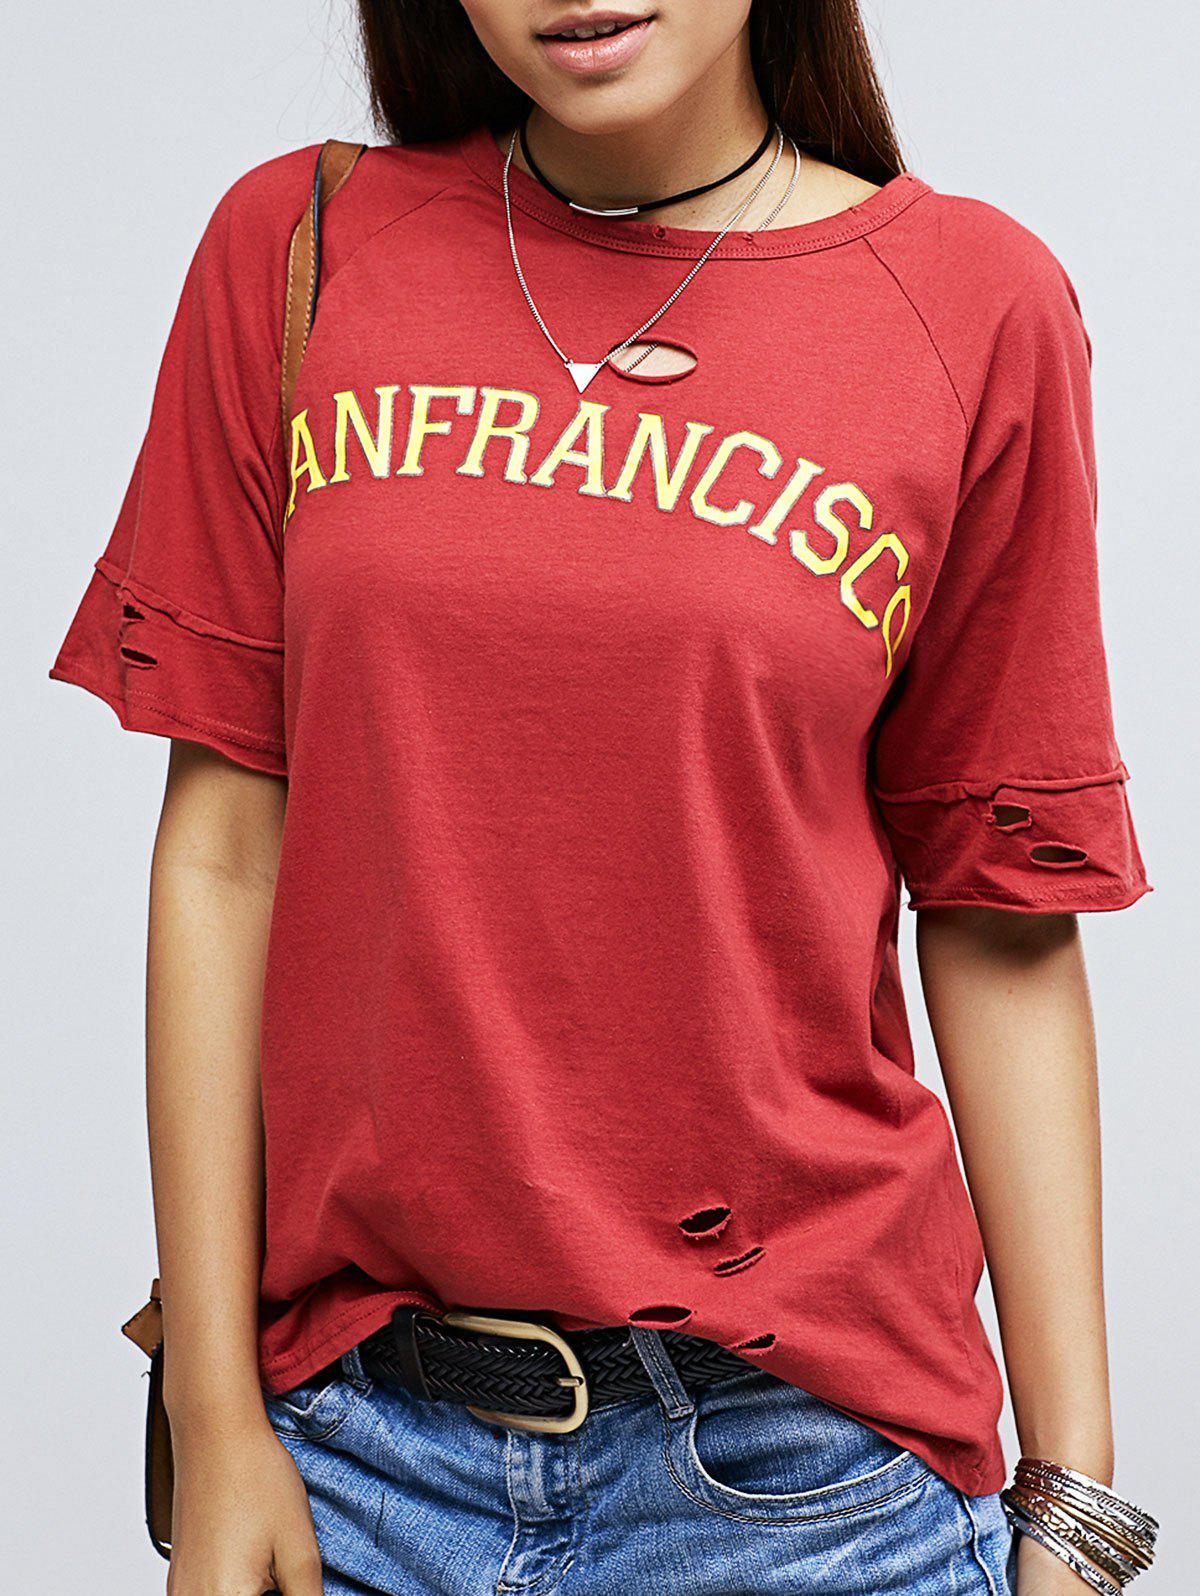 Brief Round Collar Red Letter Distressed Women's T-Shirt - RED ONE SIZE(FIT SIZE XS TO M)